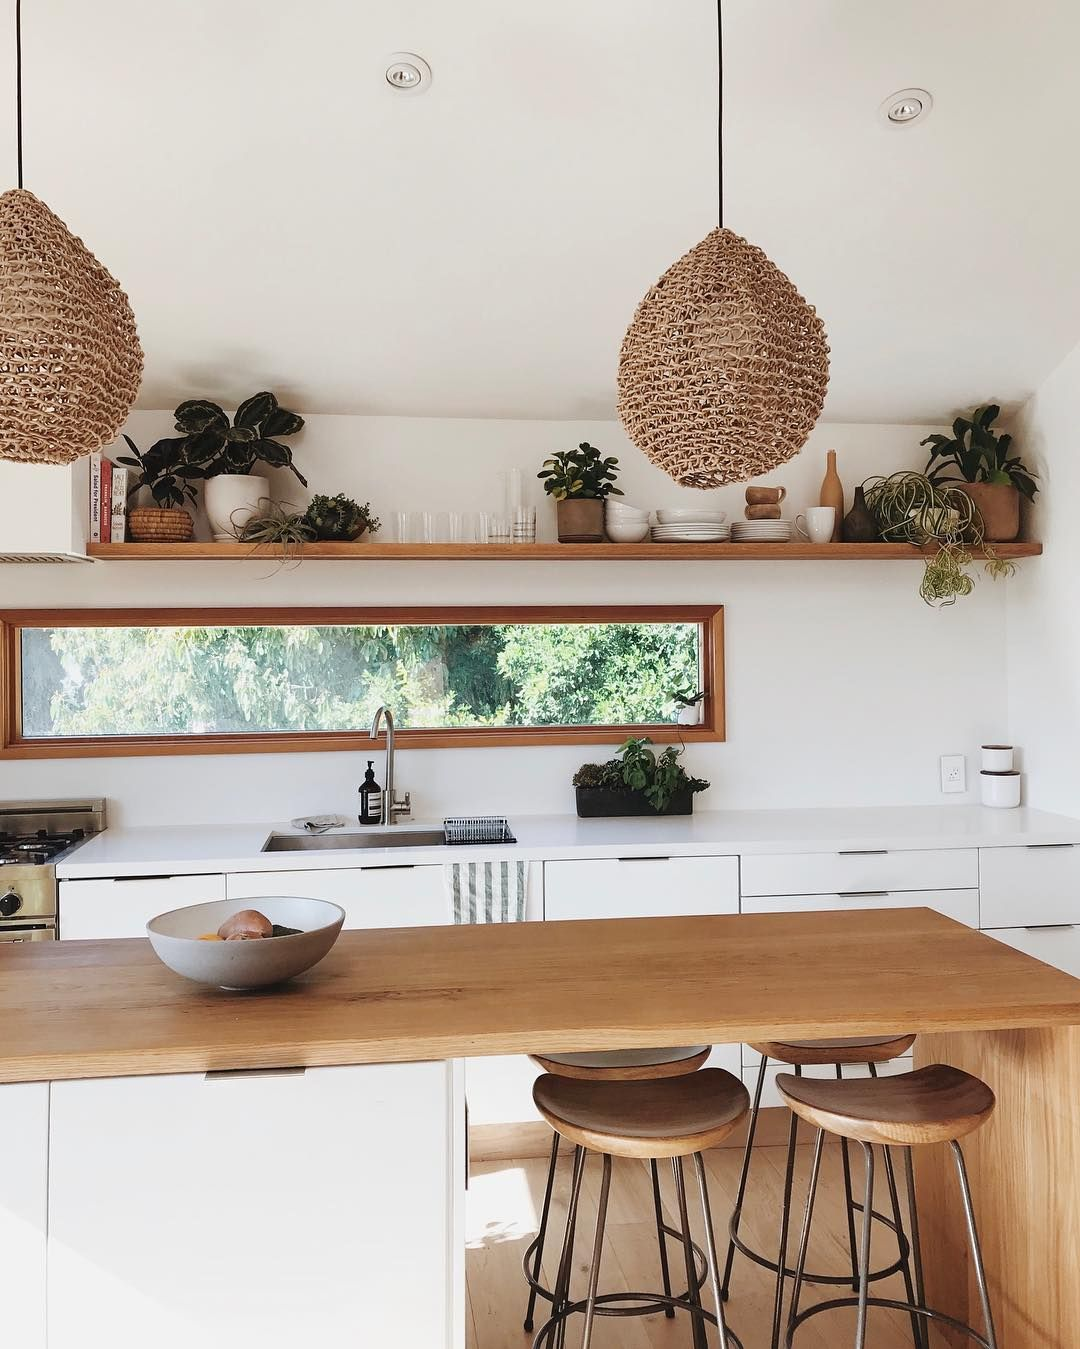 Manifested My Dream Home For A Day Dream Location From Yesterday S Nature Intent Shoot Minimal Kitchen Design Home Decor Kitchen Interior Design Kitchen